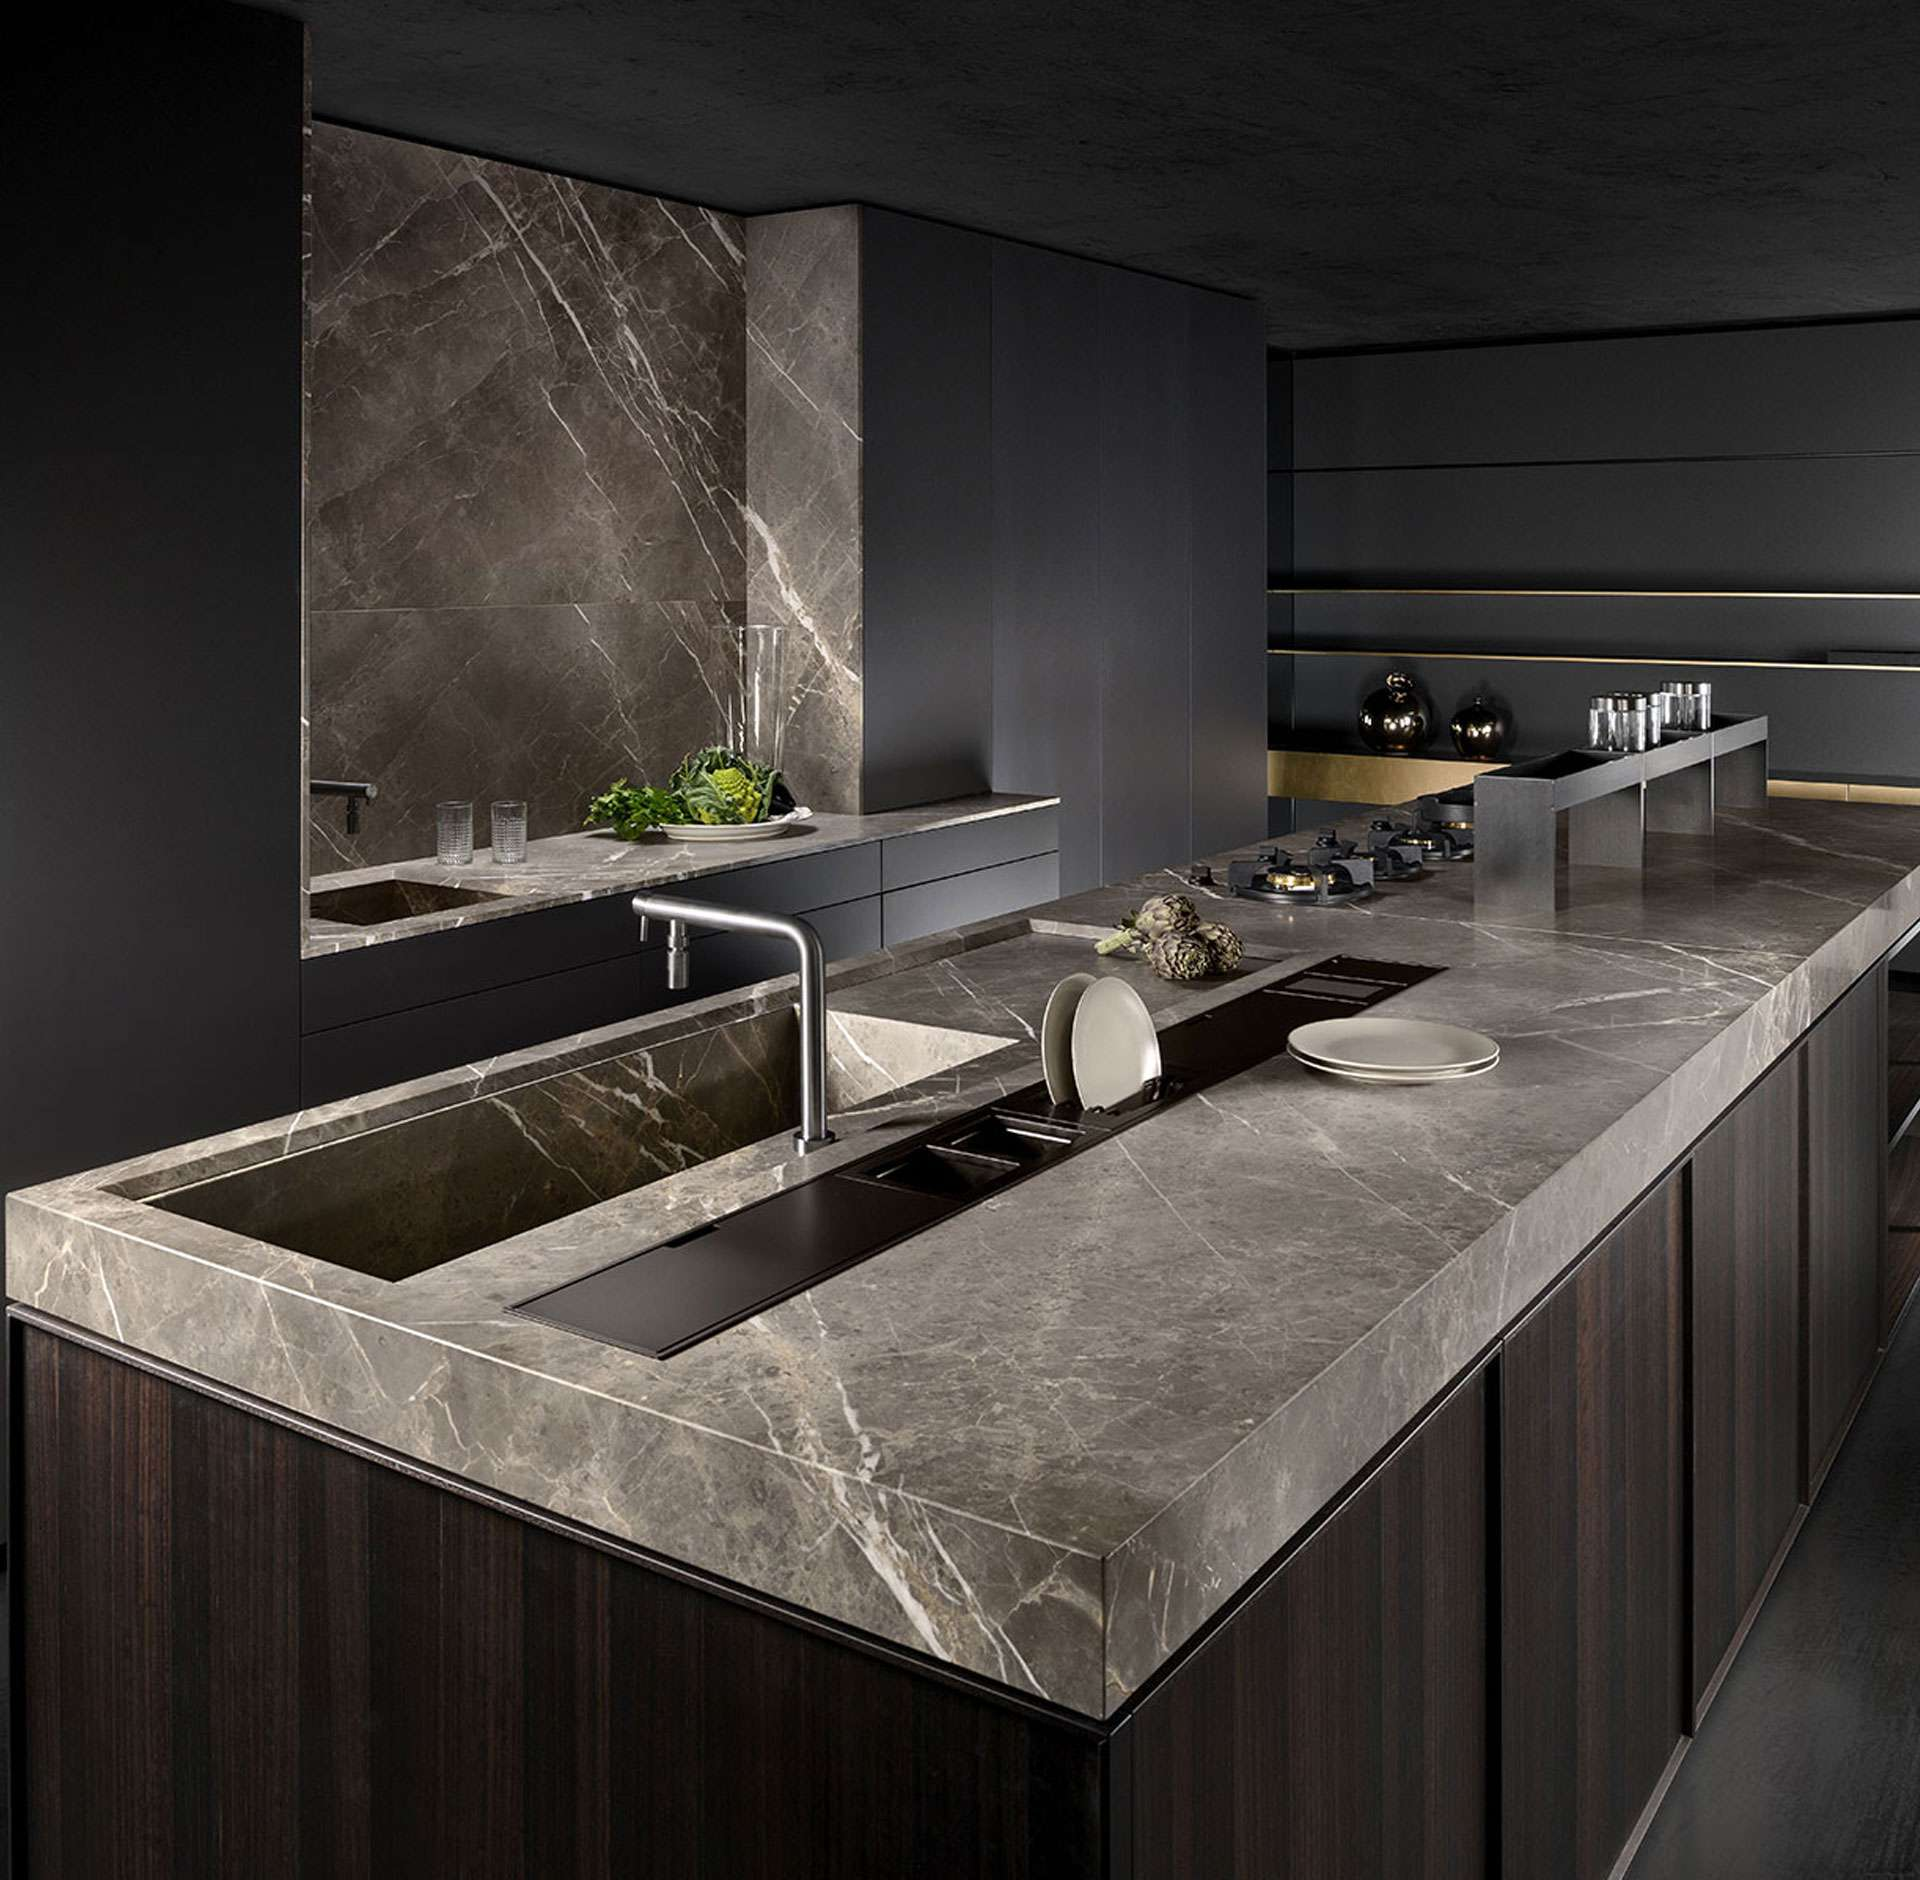 Stylish functionality of Italian kitchen with creative material